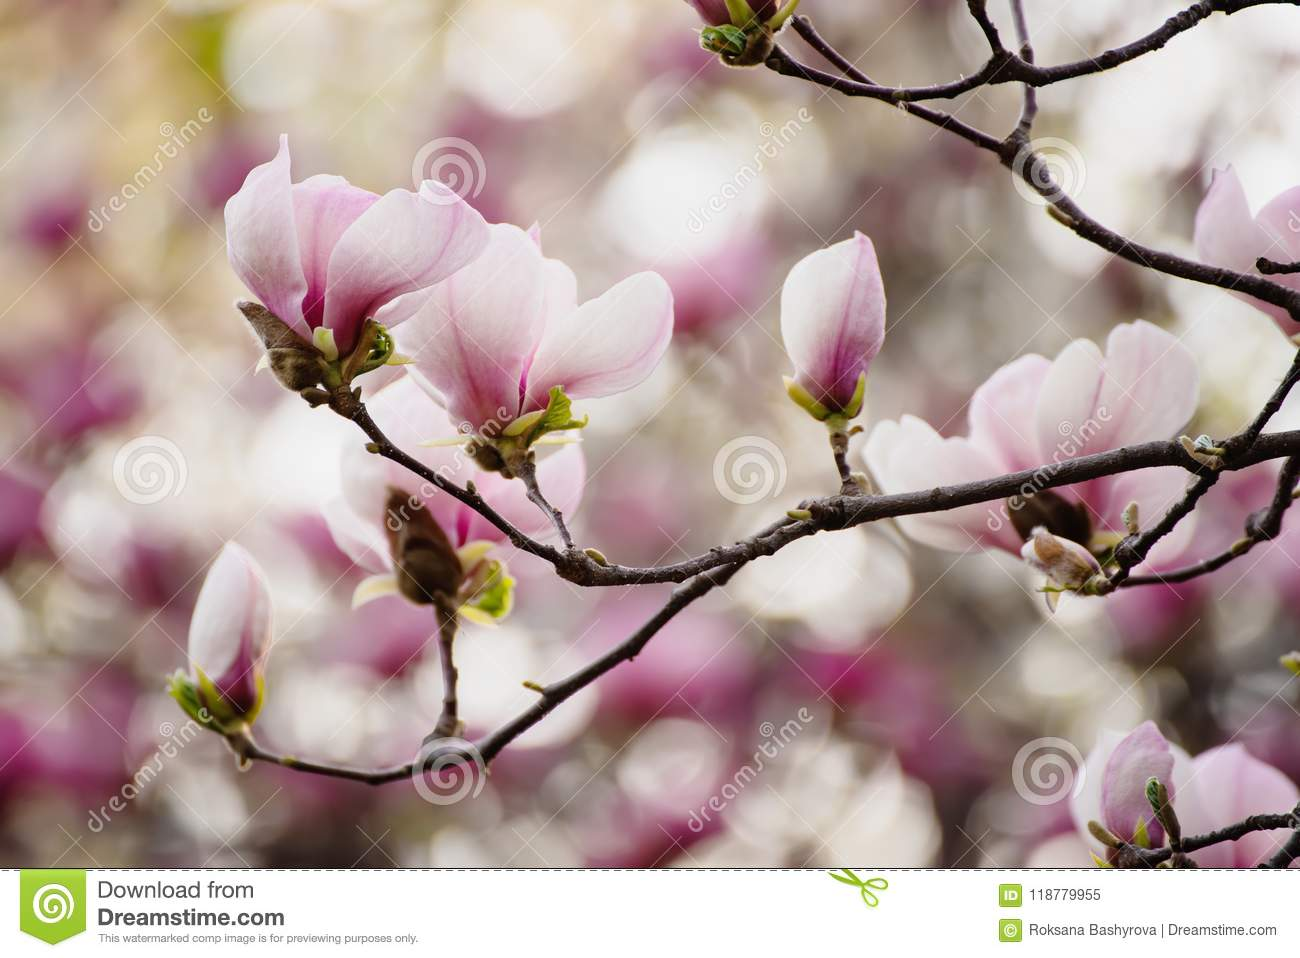 Magnolia Spring Flowers Stock Image Image Of Backgrounds 118779955